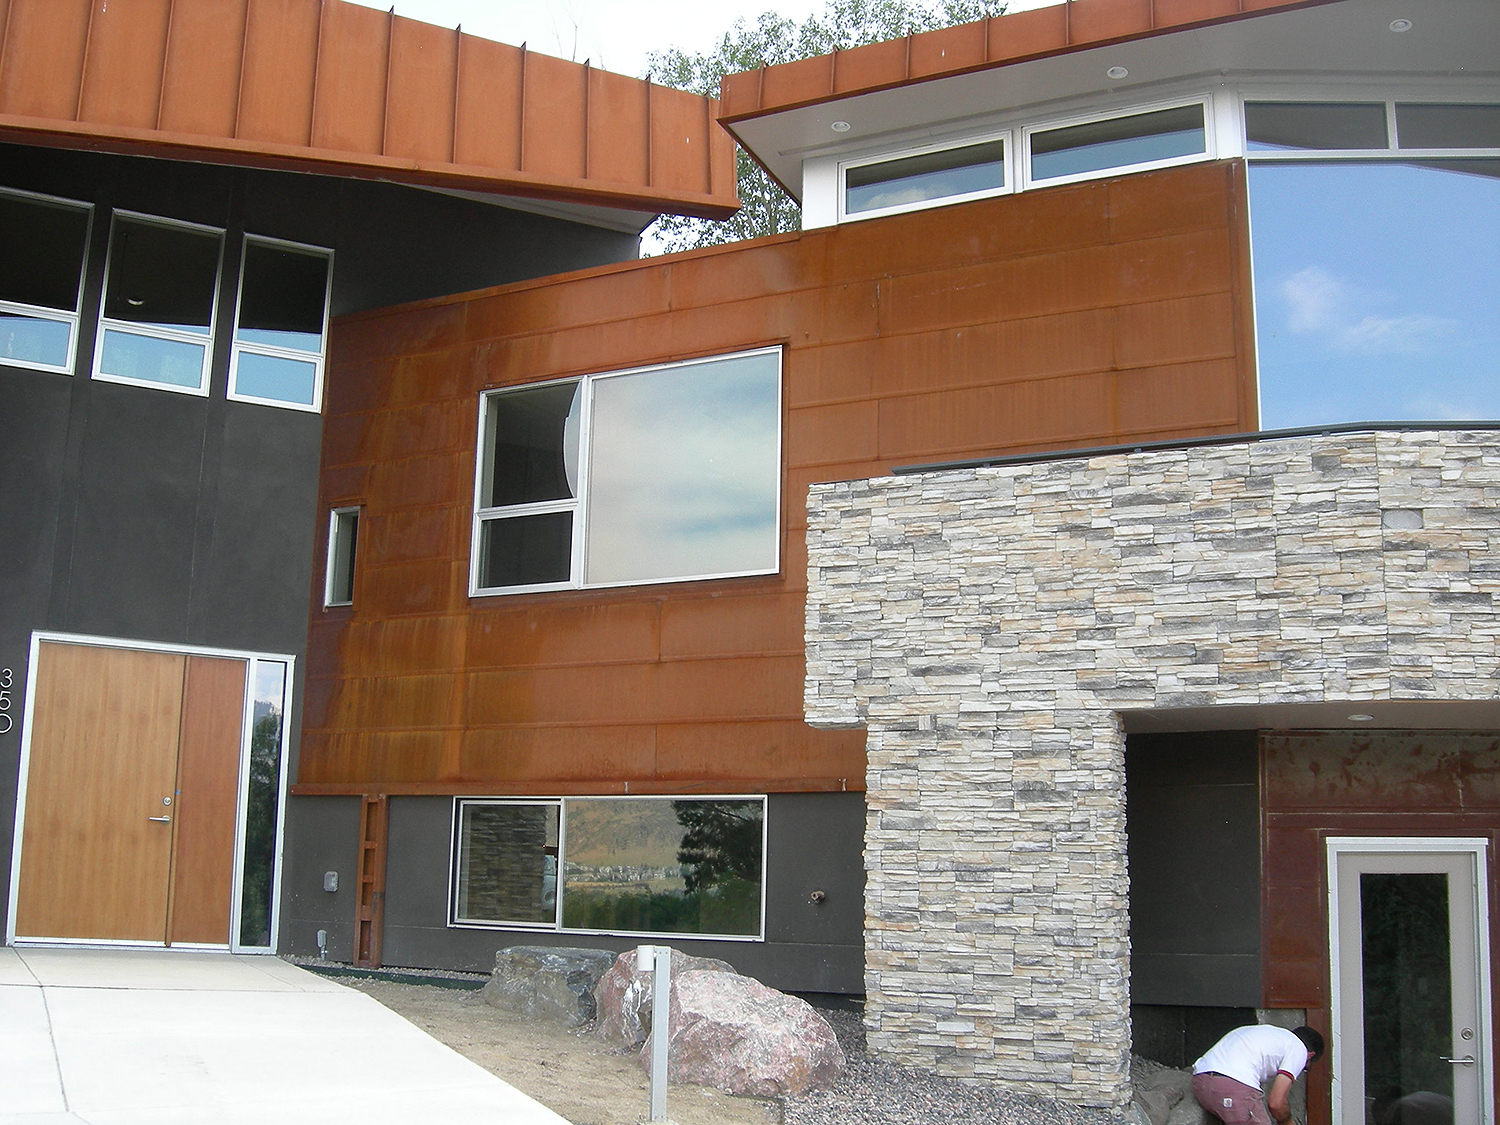 Cold rolled steel siding and fascia